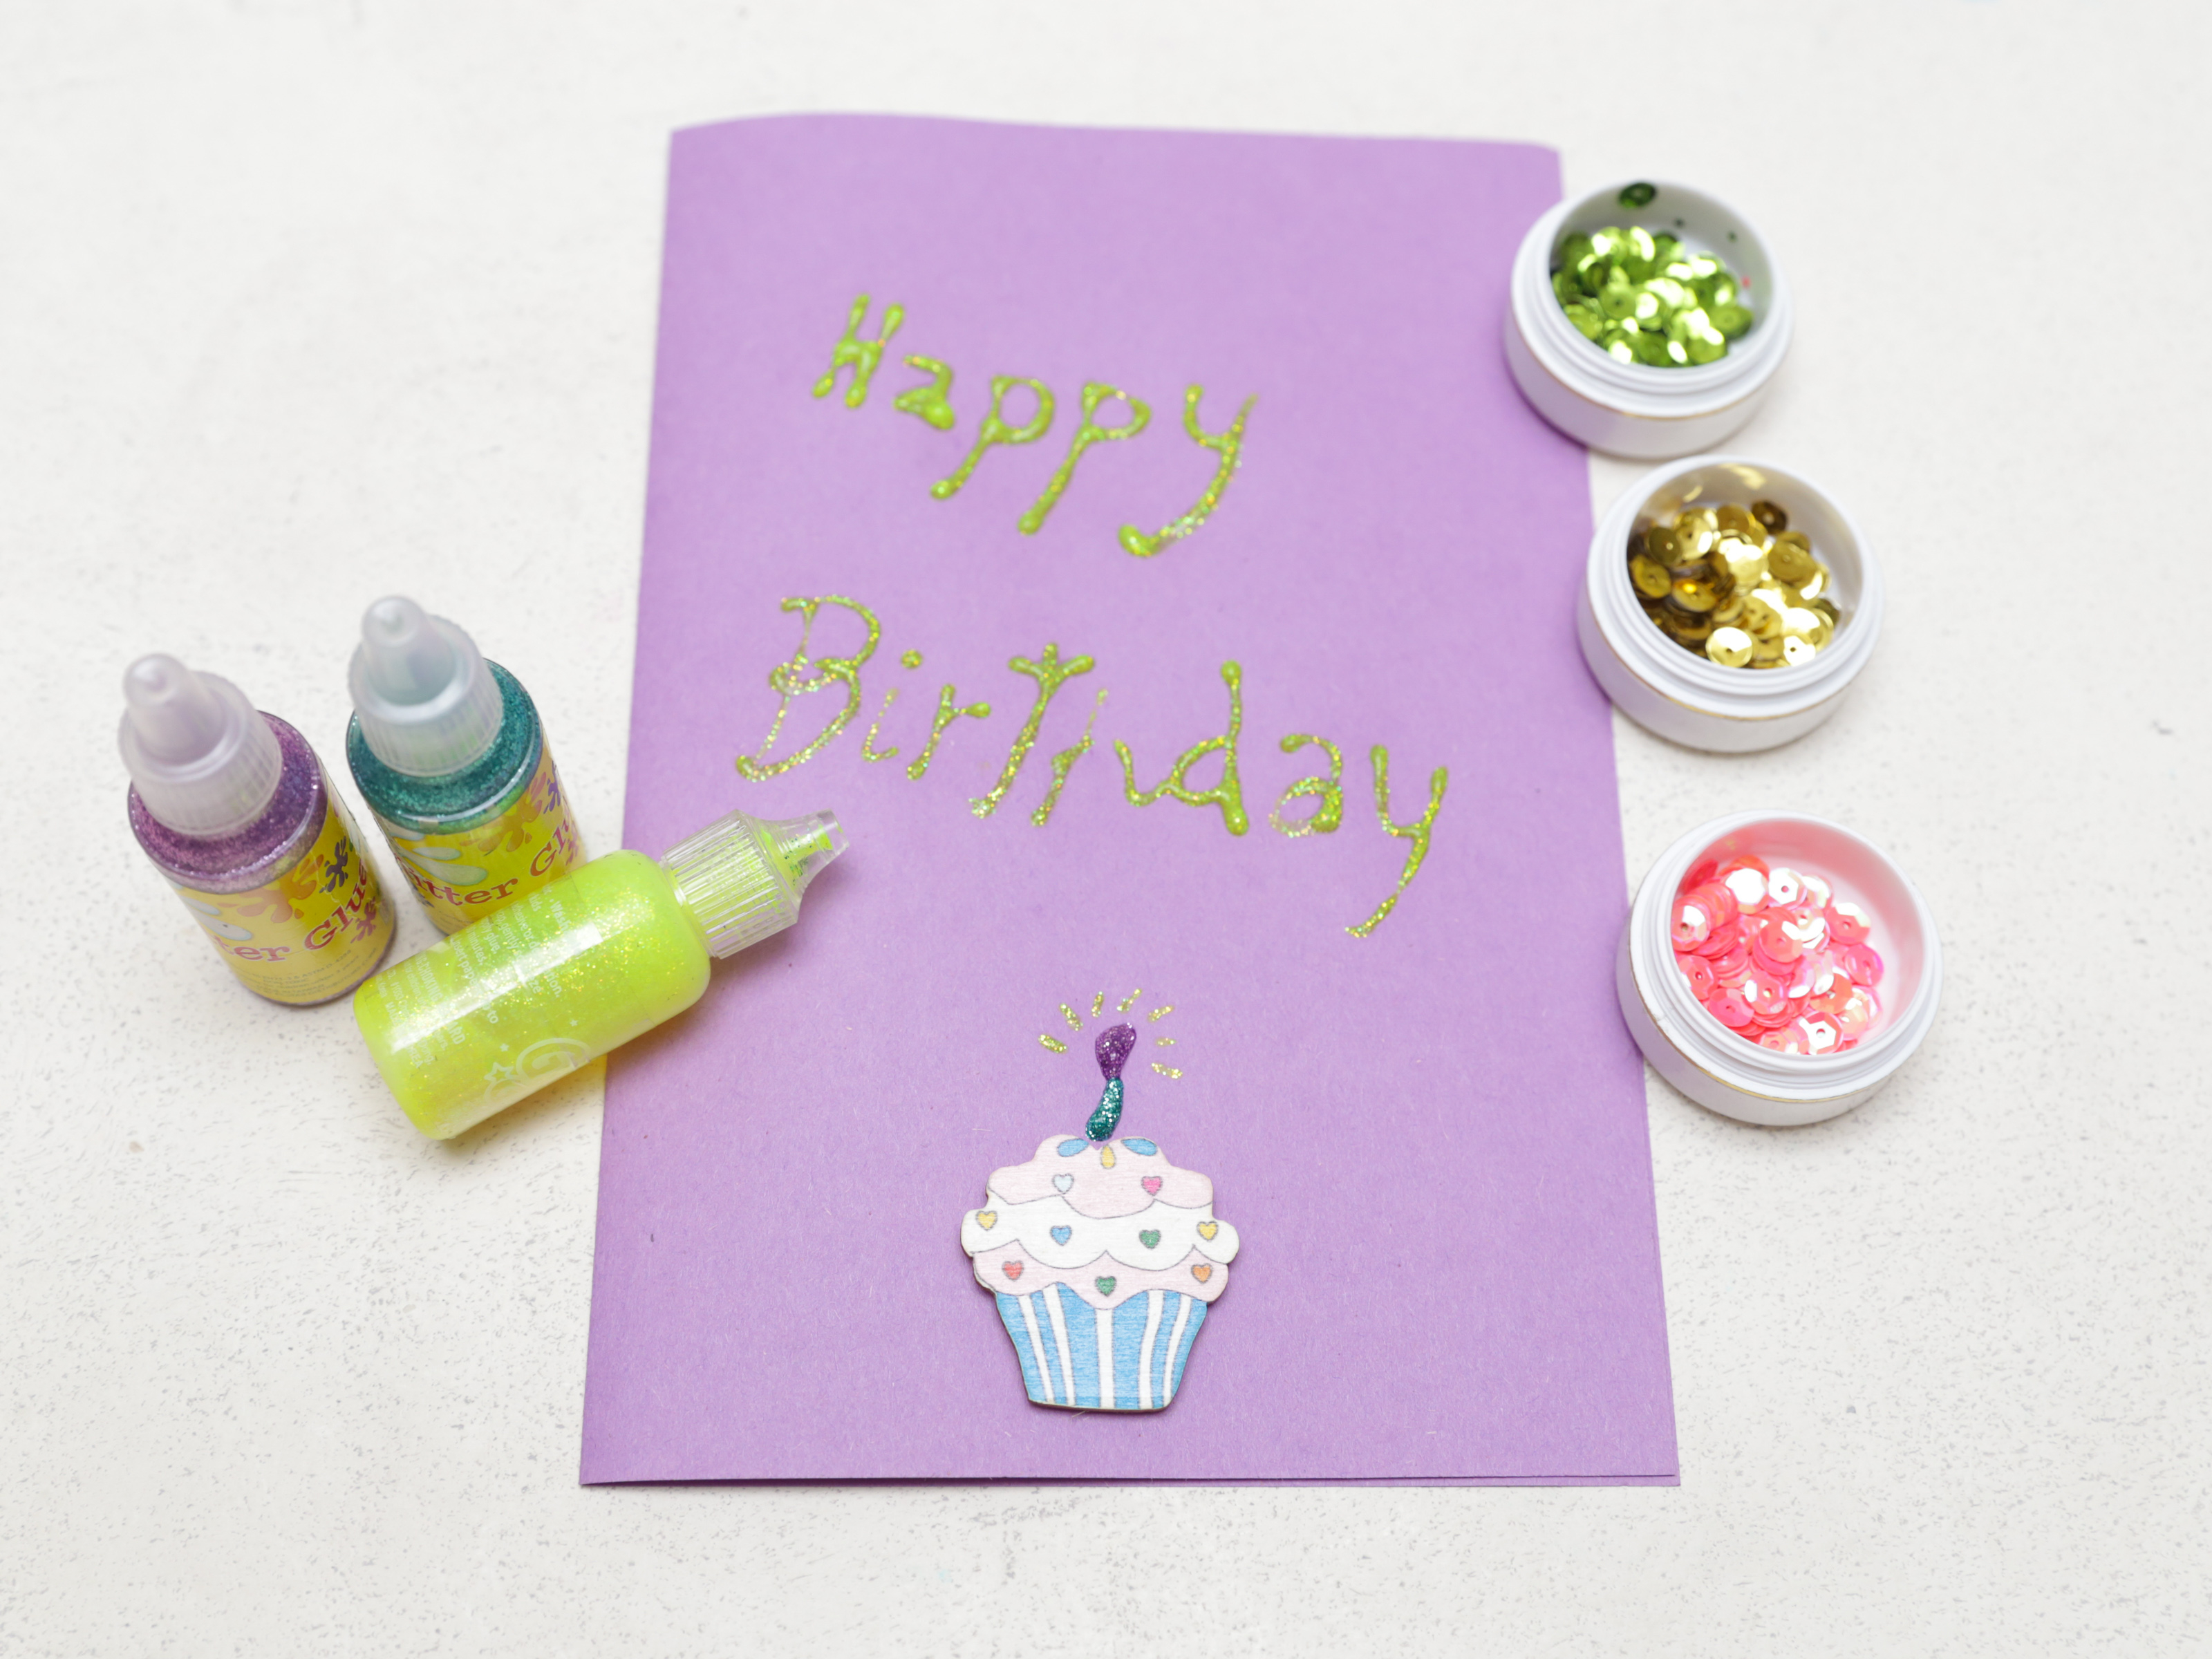 Handmade Birthday Card Ideas For Daughter How To Make A Simple Handmade Birthday Card 15 Steps